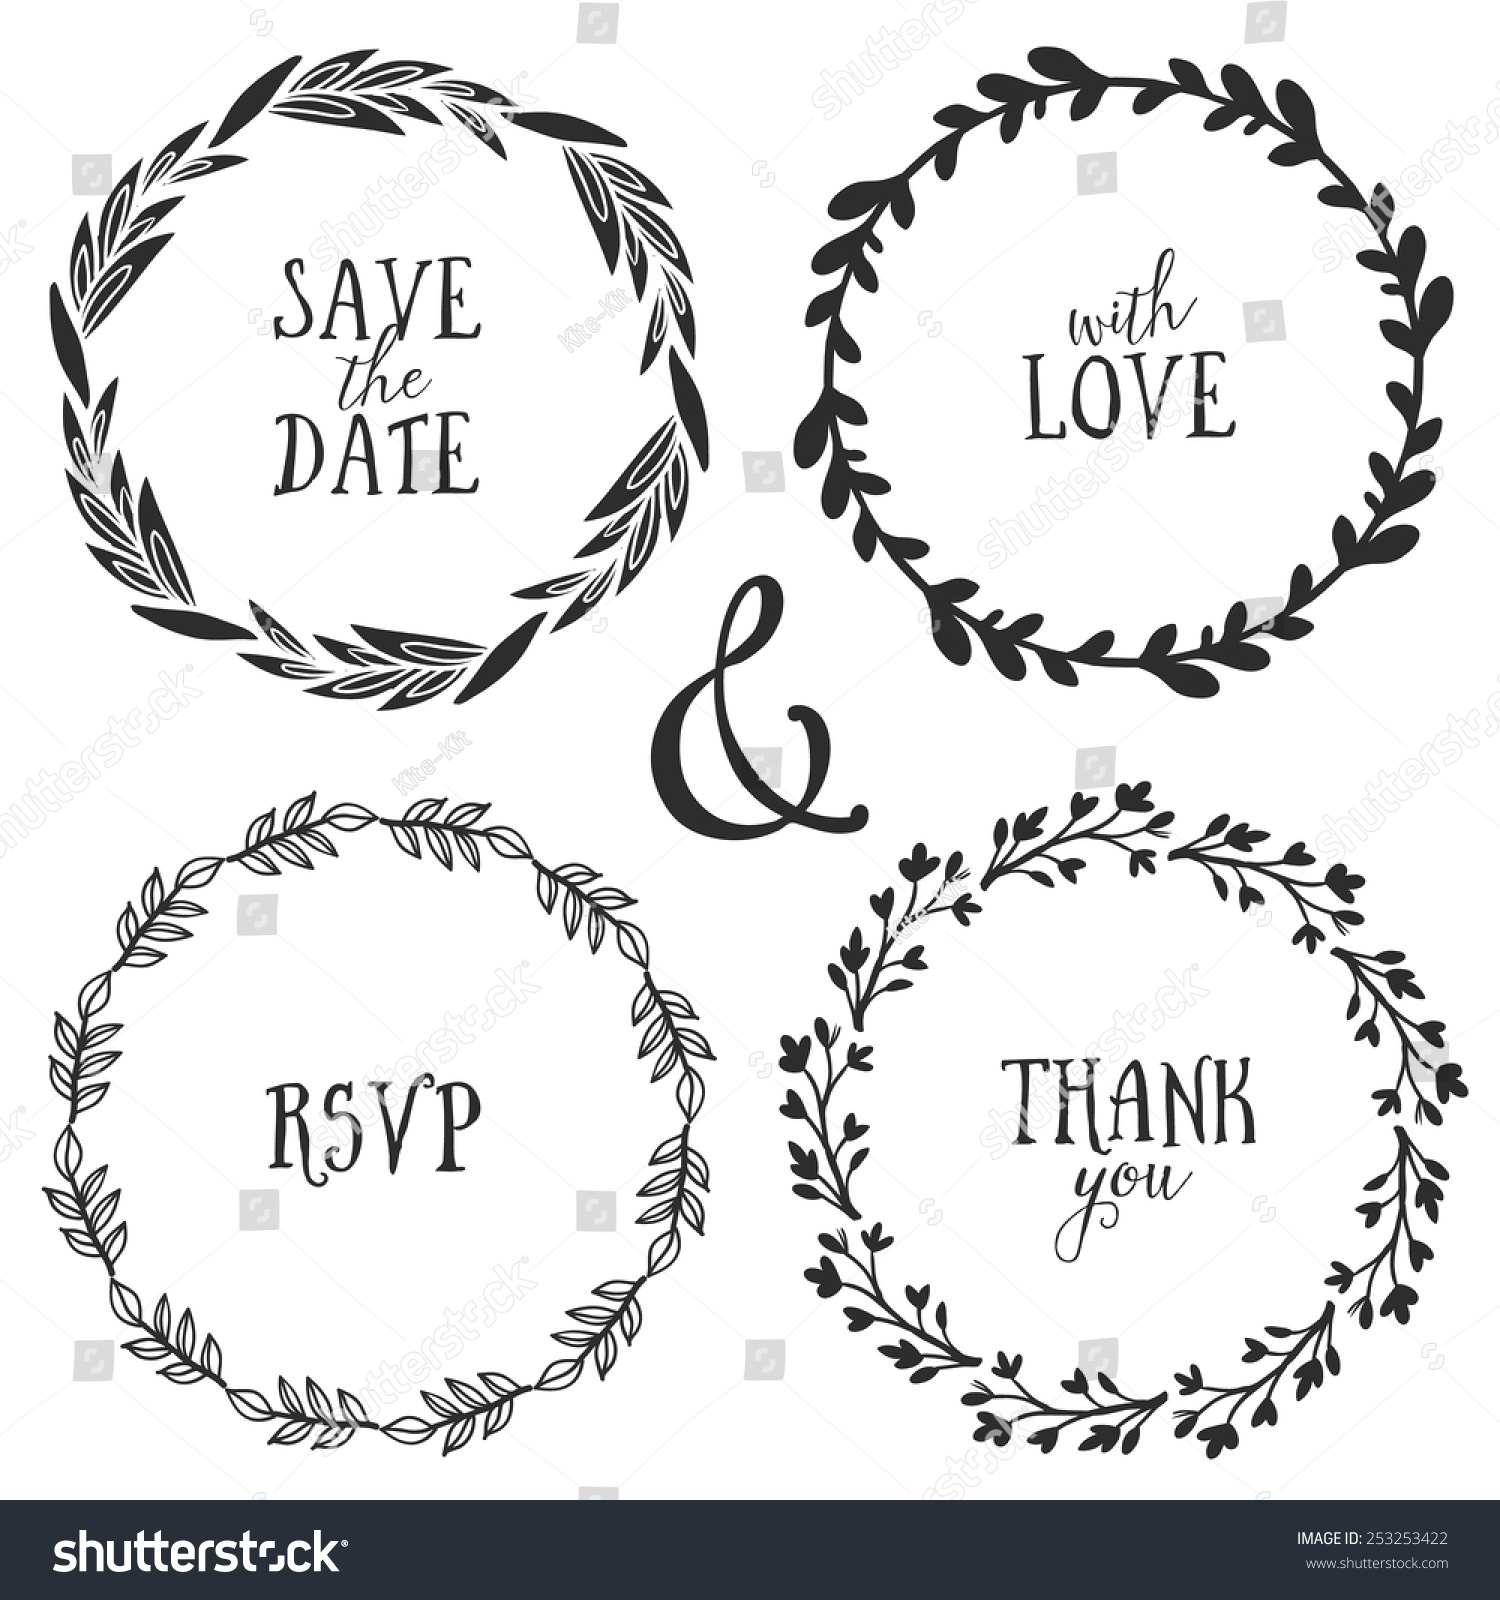 Rsvp Invitation Templates for luxury invitations design